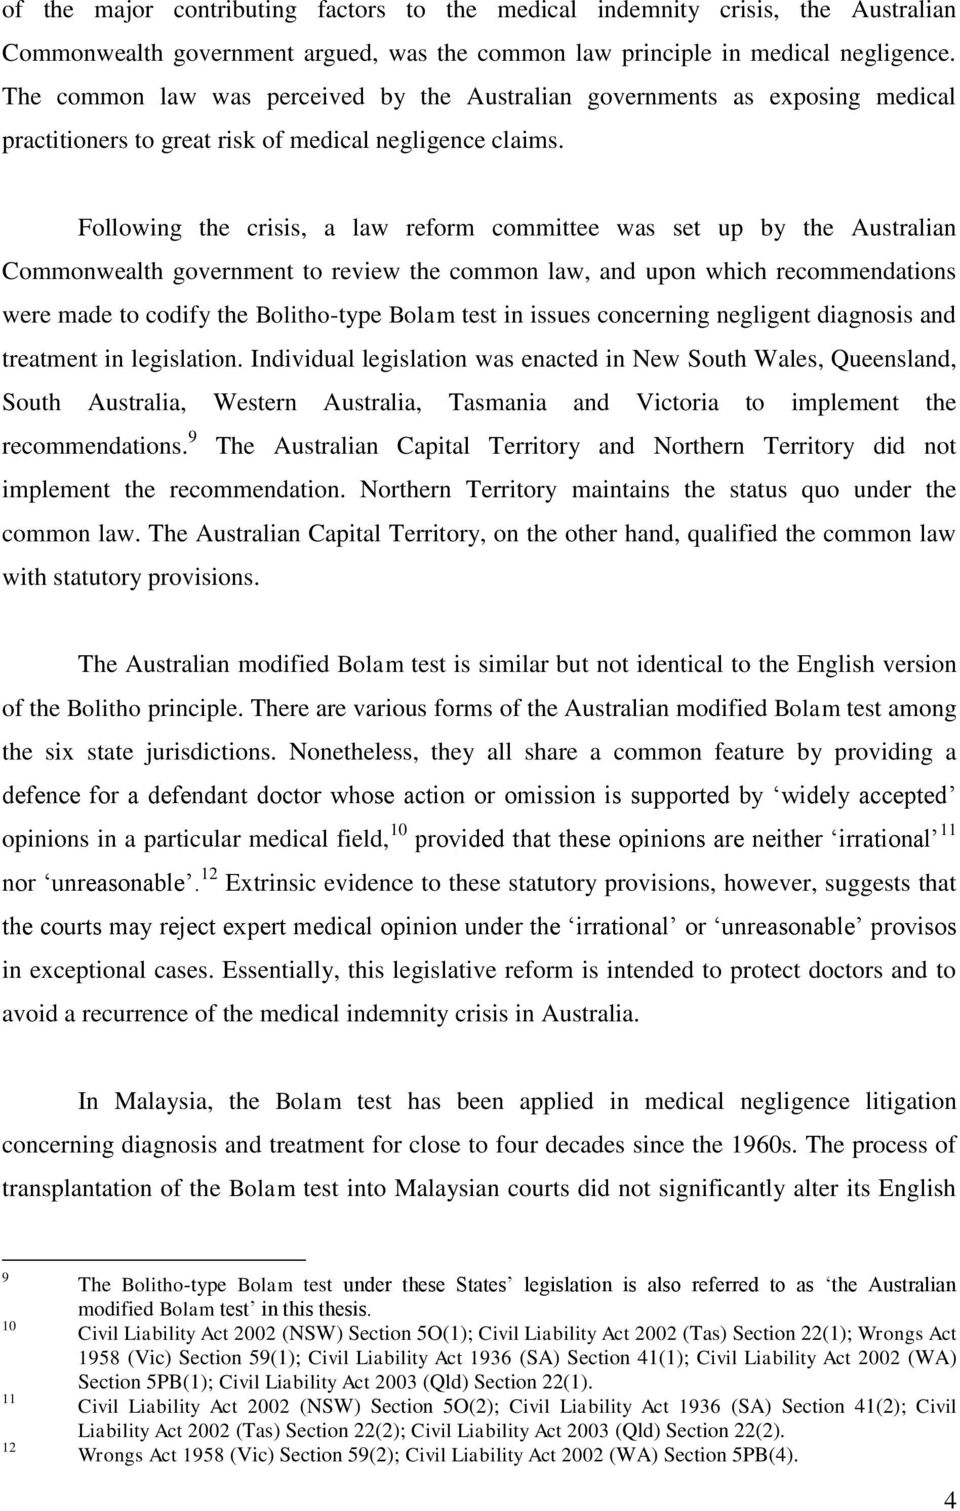 Following the crisis, a law reform committee was set up by the Australian Commonwealth government to review the common law, and upon which recommendations were made to codify the Bolitho-type Bolam